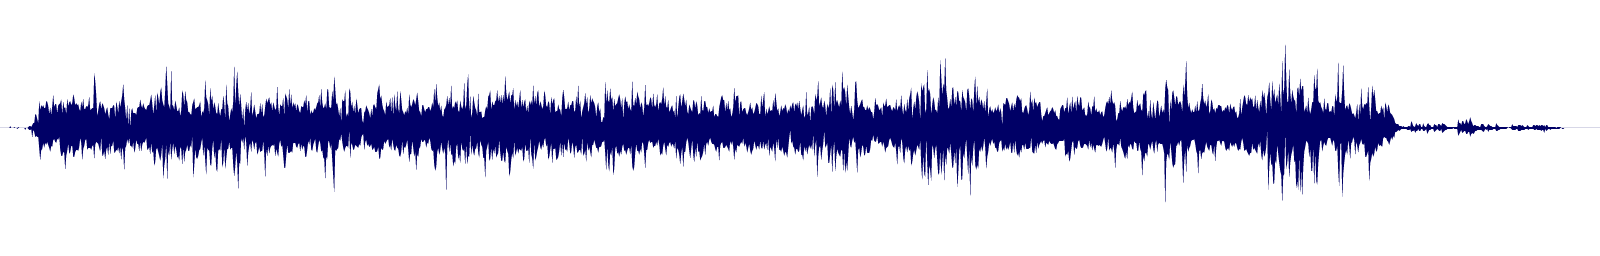 waveform of track #91997